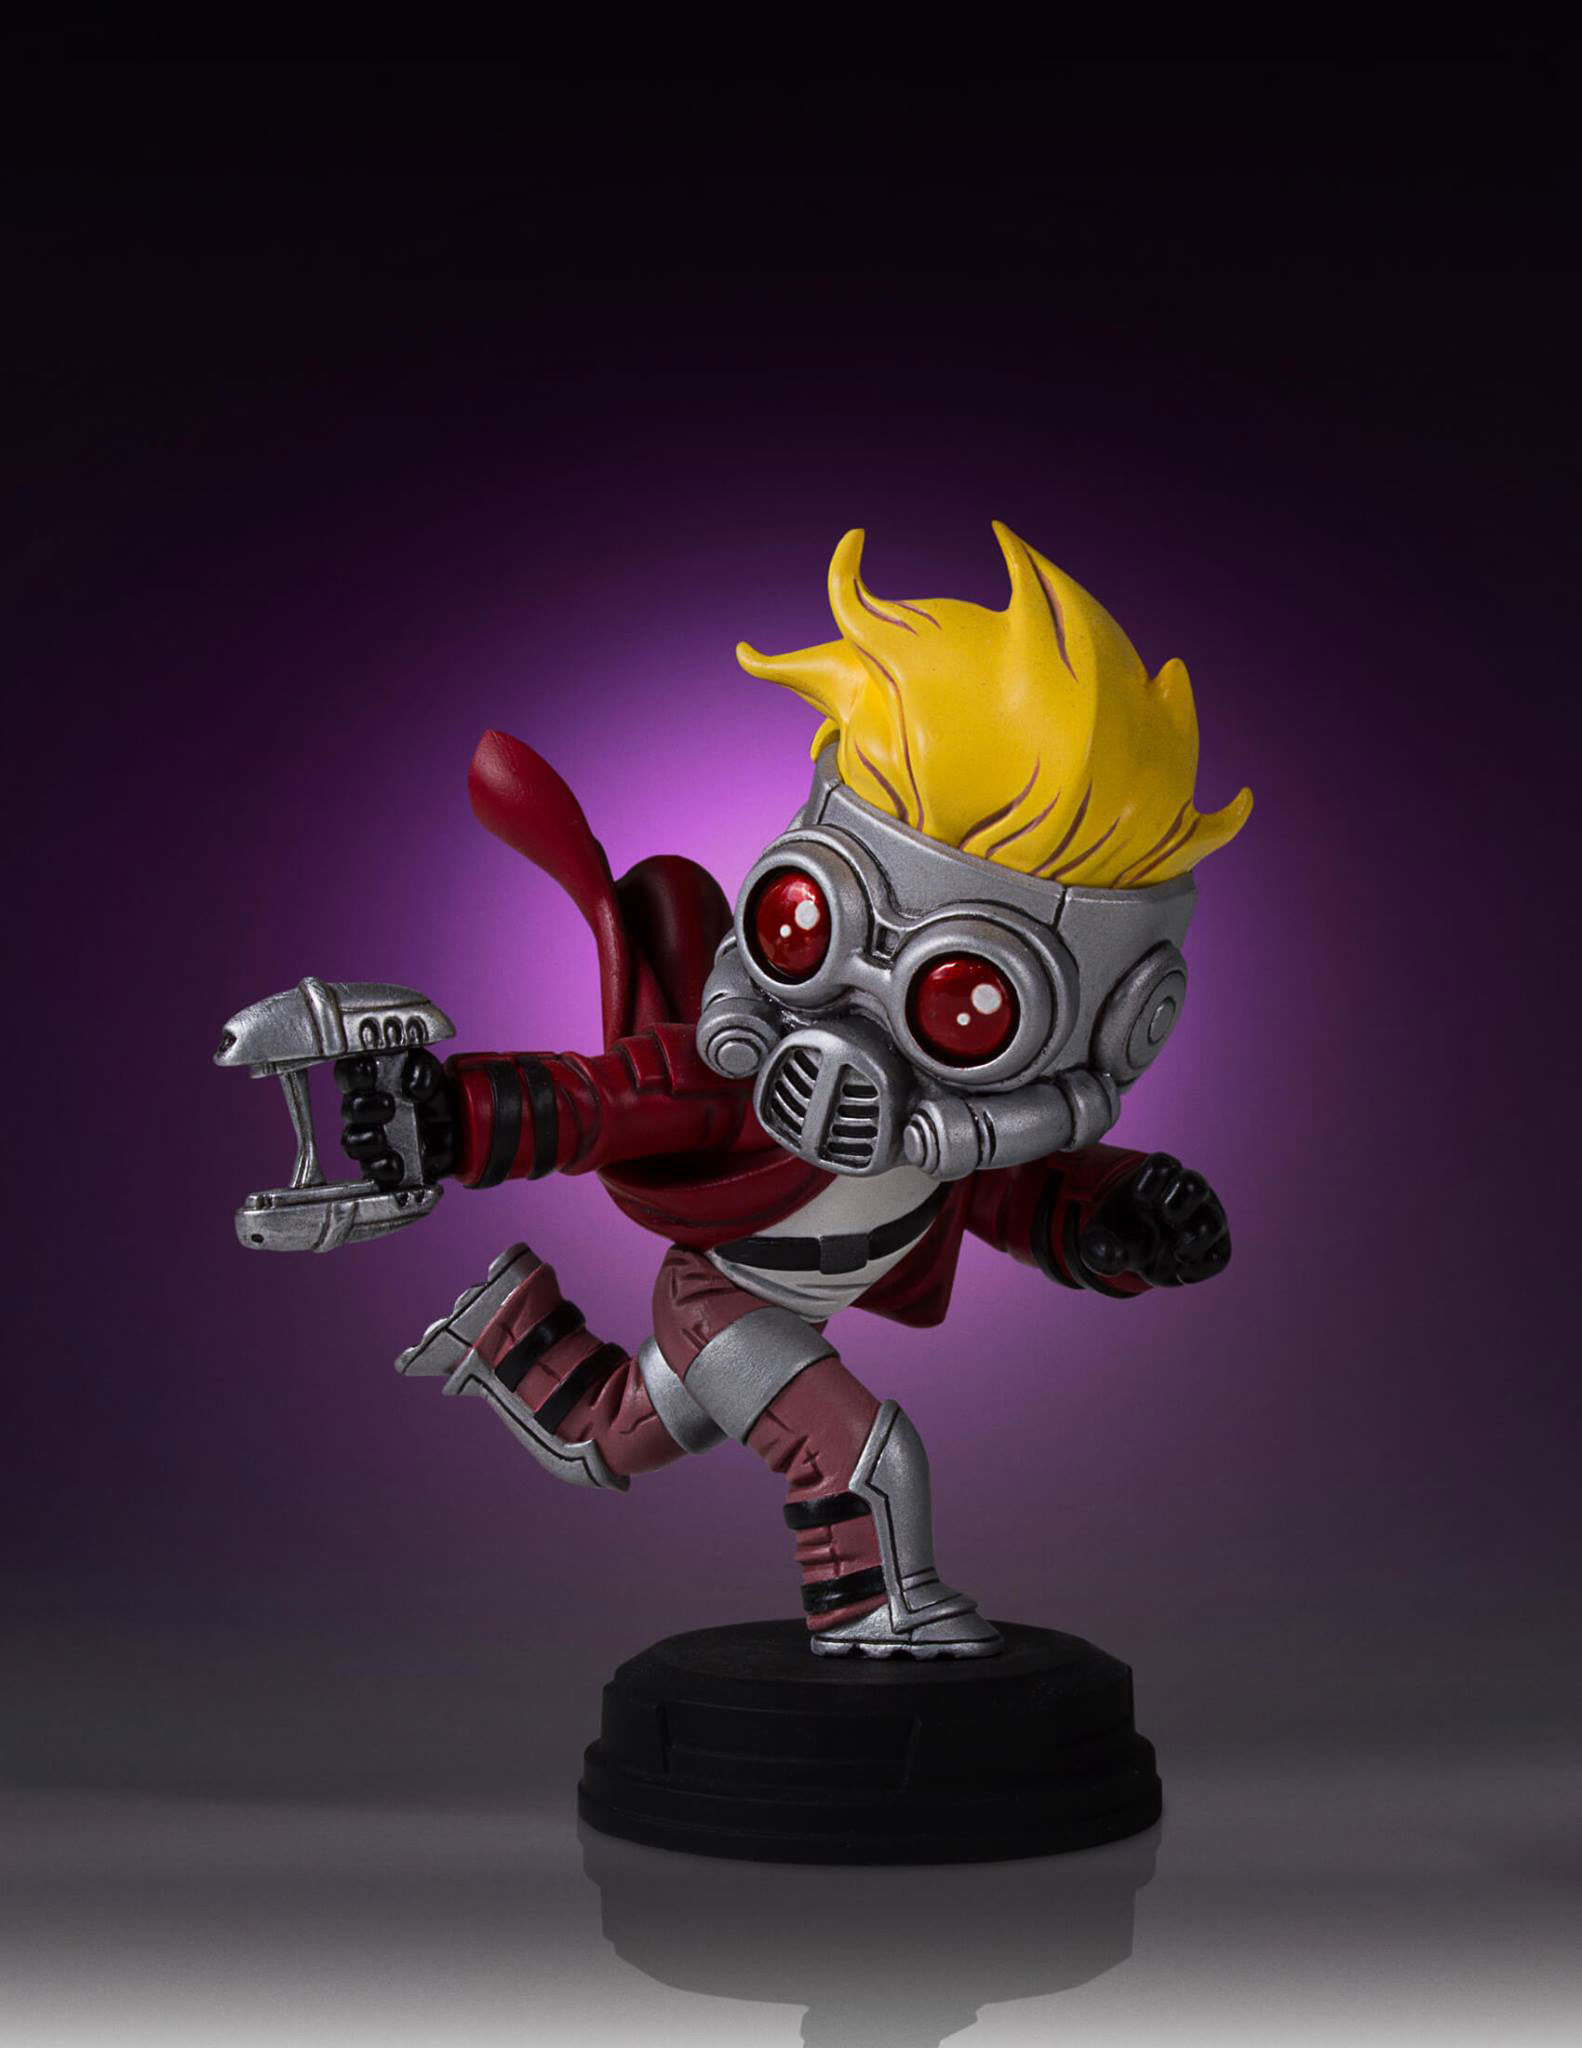 gentle-giant-star-lord-guardians-of-the-galaxy-statue-5